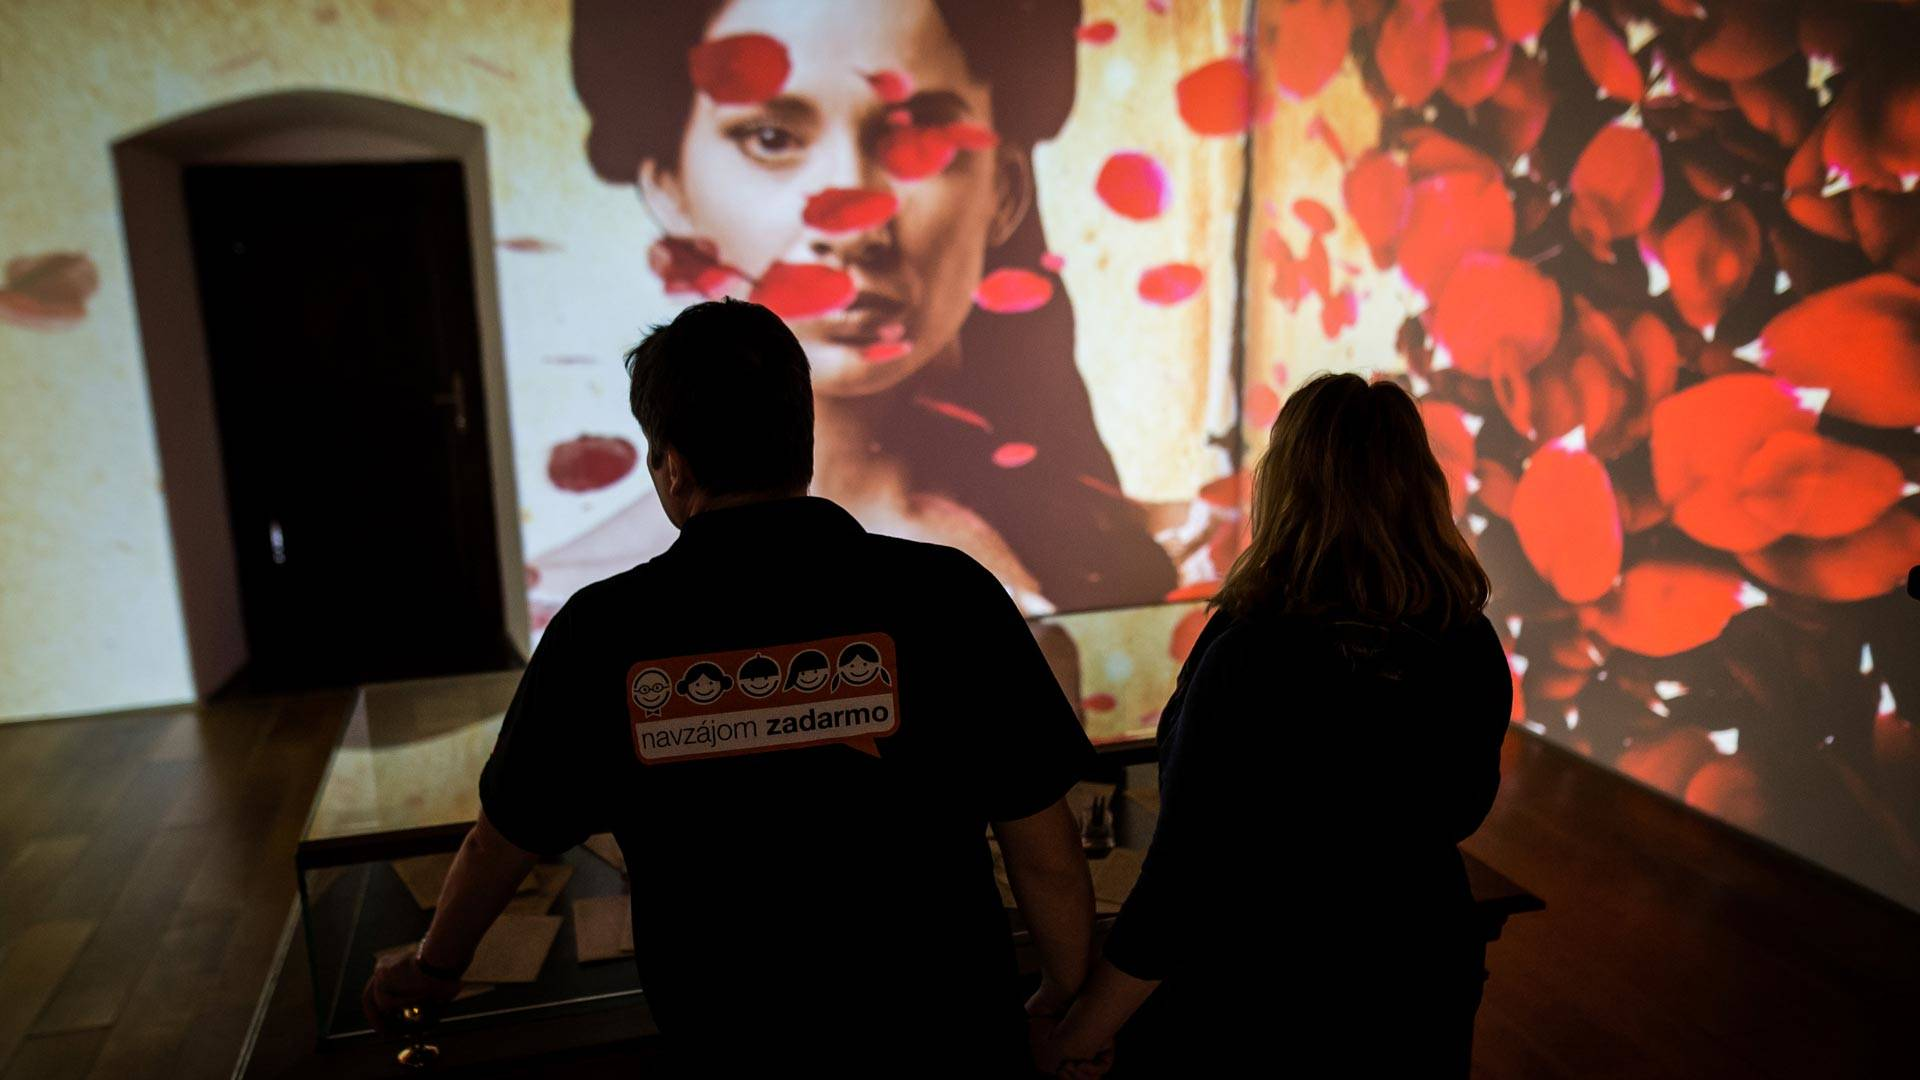 A couple visits the interactive exhibition dedicated to the longest love poem in the world, written by Andrej Sladkovic in 1844 - Marina, in Banska Stiavnica on Feb. 3, 2018. VLADIMIR SIMICEK/AFP/Getty Images